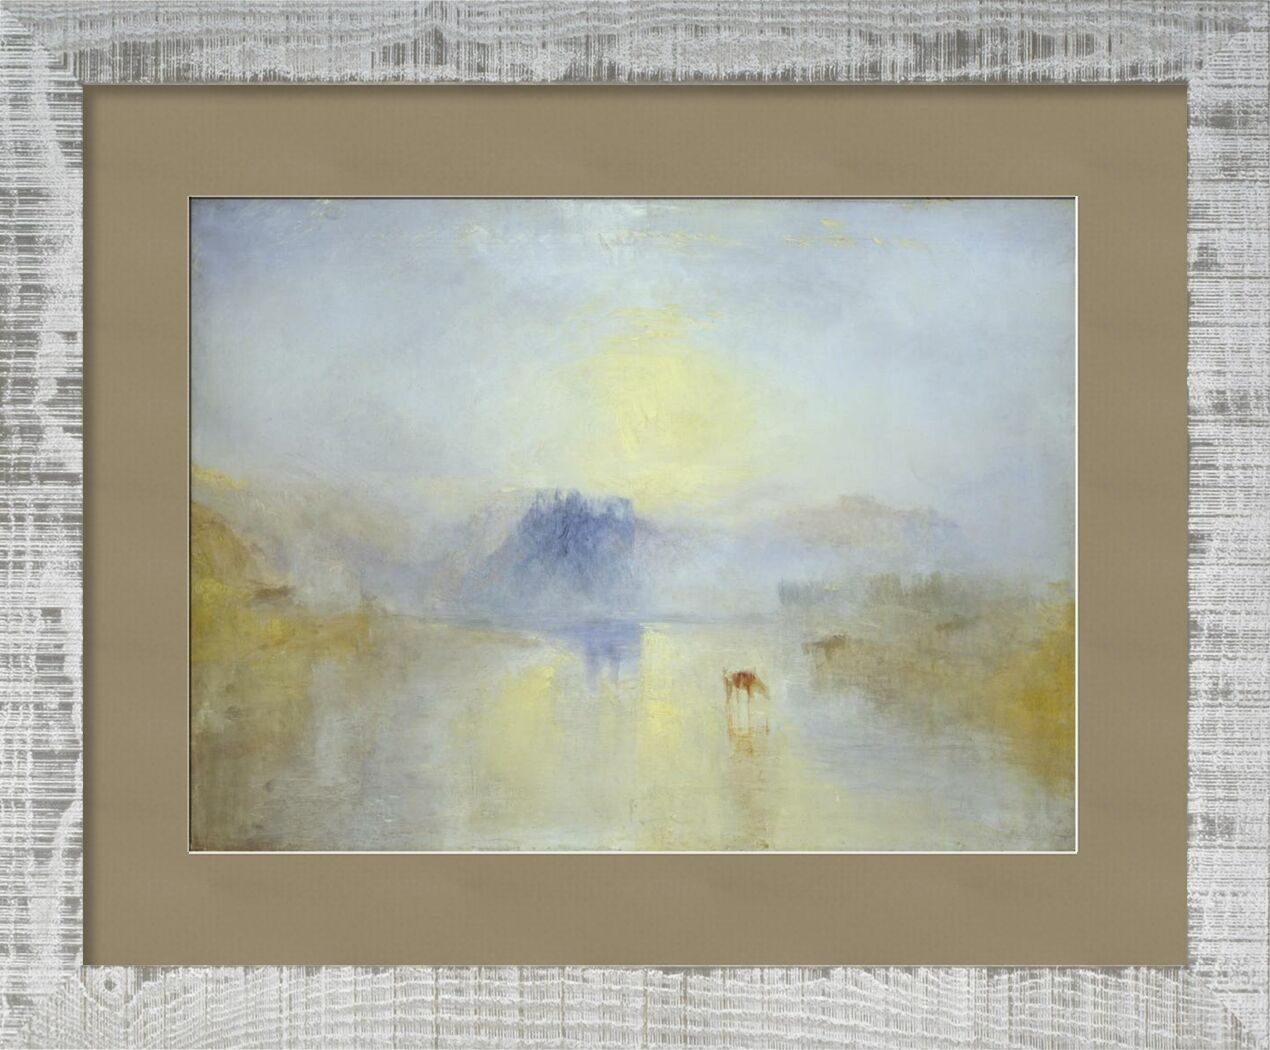 Norham Castle, Sunrise - WILLIAM TURNER 1845 from AUX BEAUX-ARTS, Prodi Art, Norham, Sunrise, painting, WILLIAM TURNER, england, horses, chateau